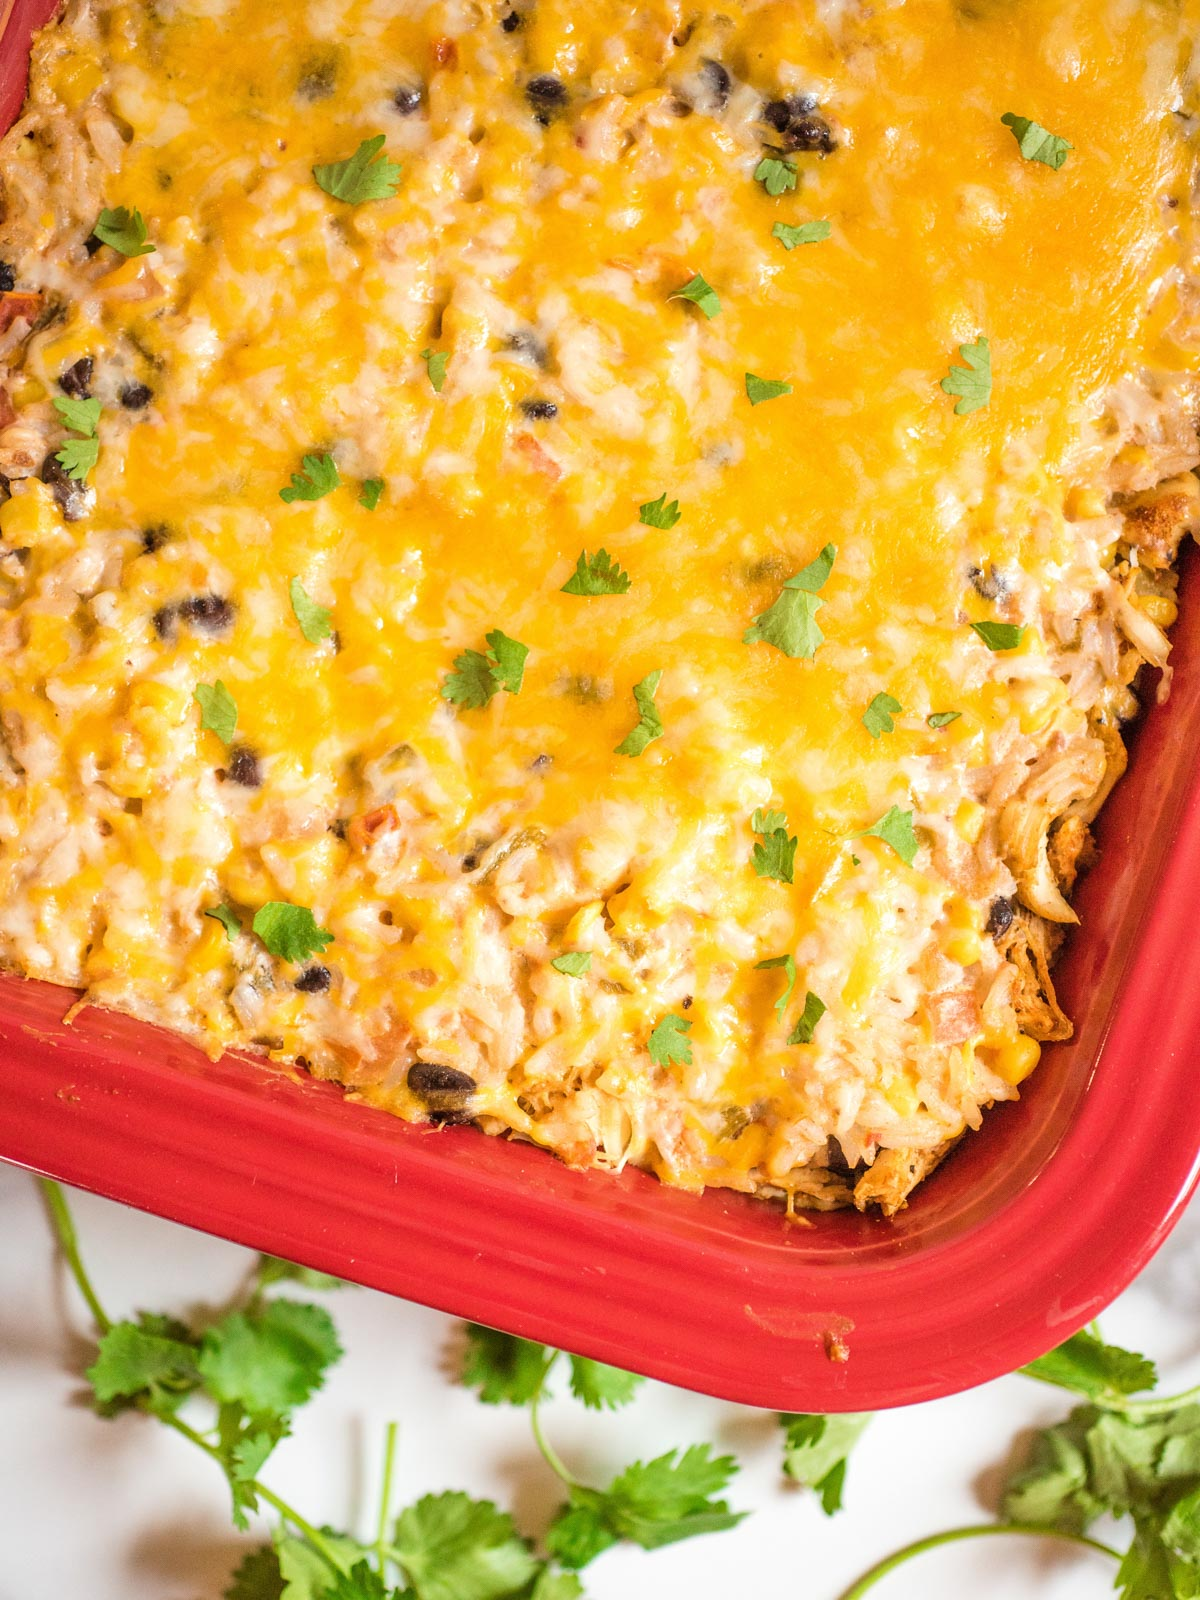 tex mex chicken and rice casserole in a red baking dish